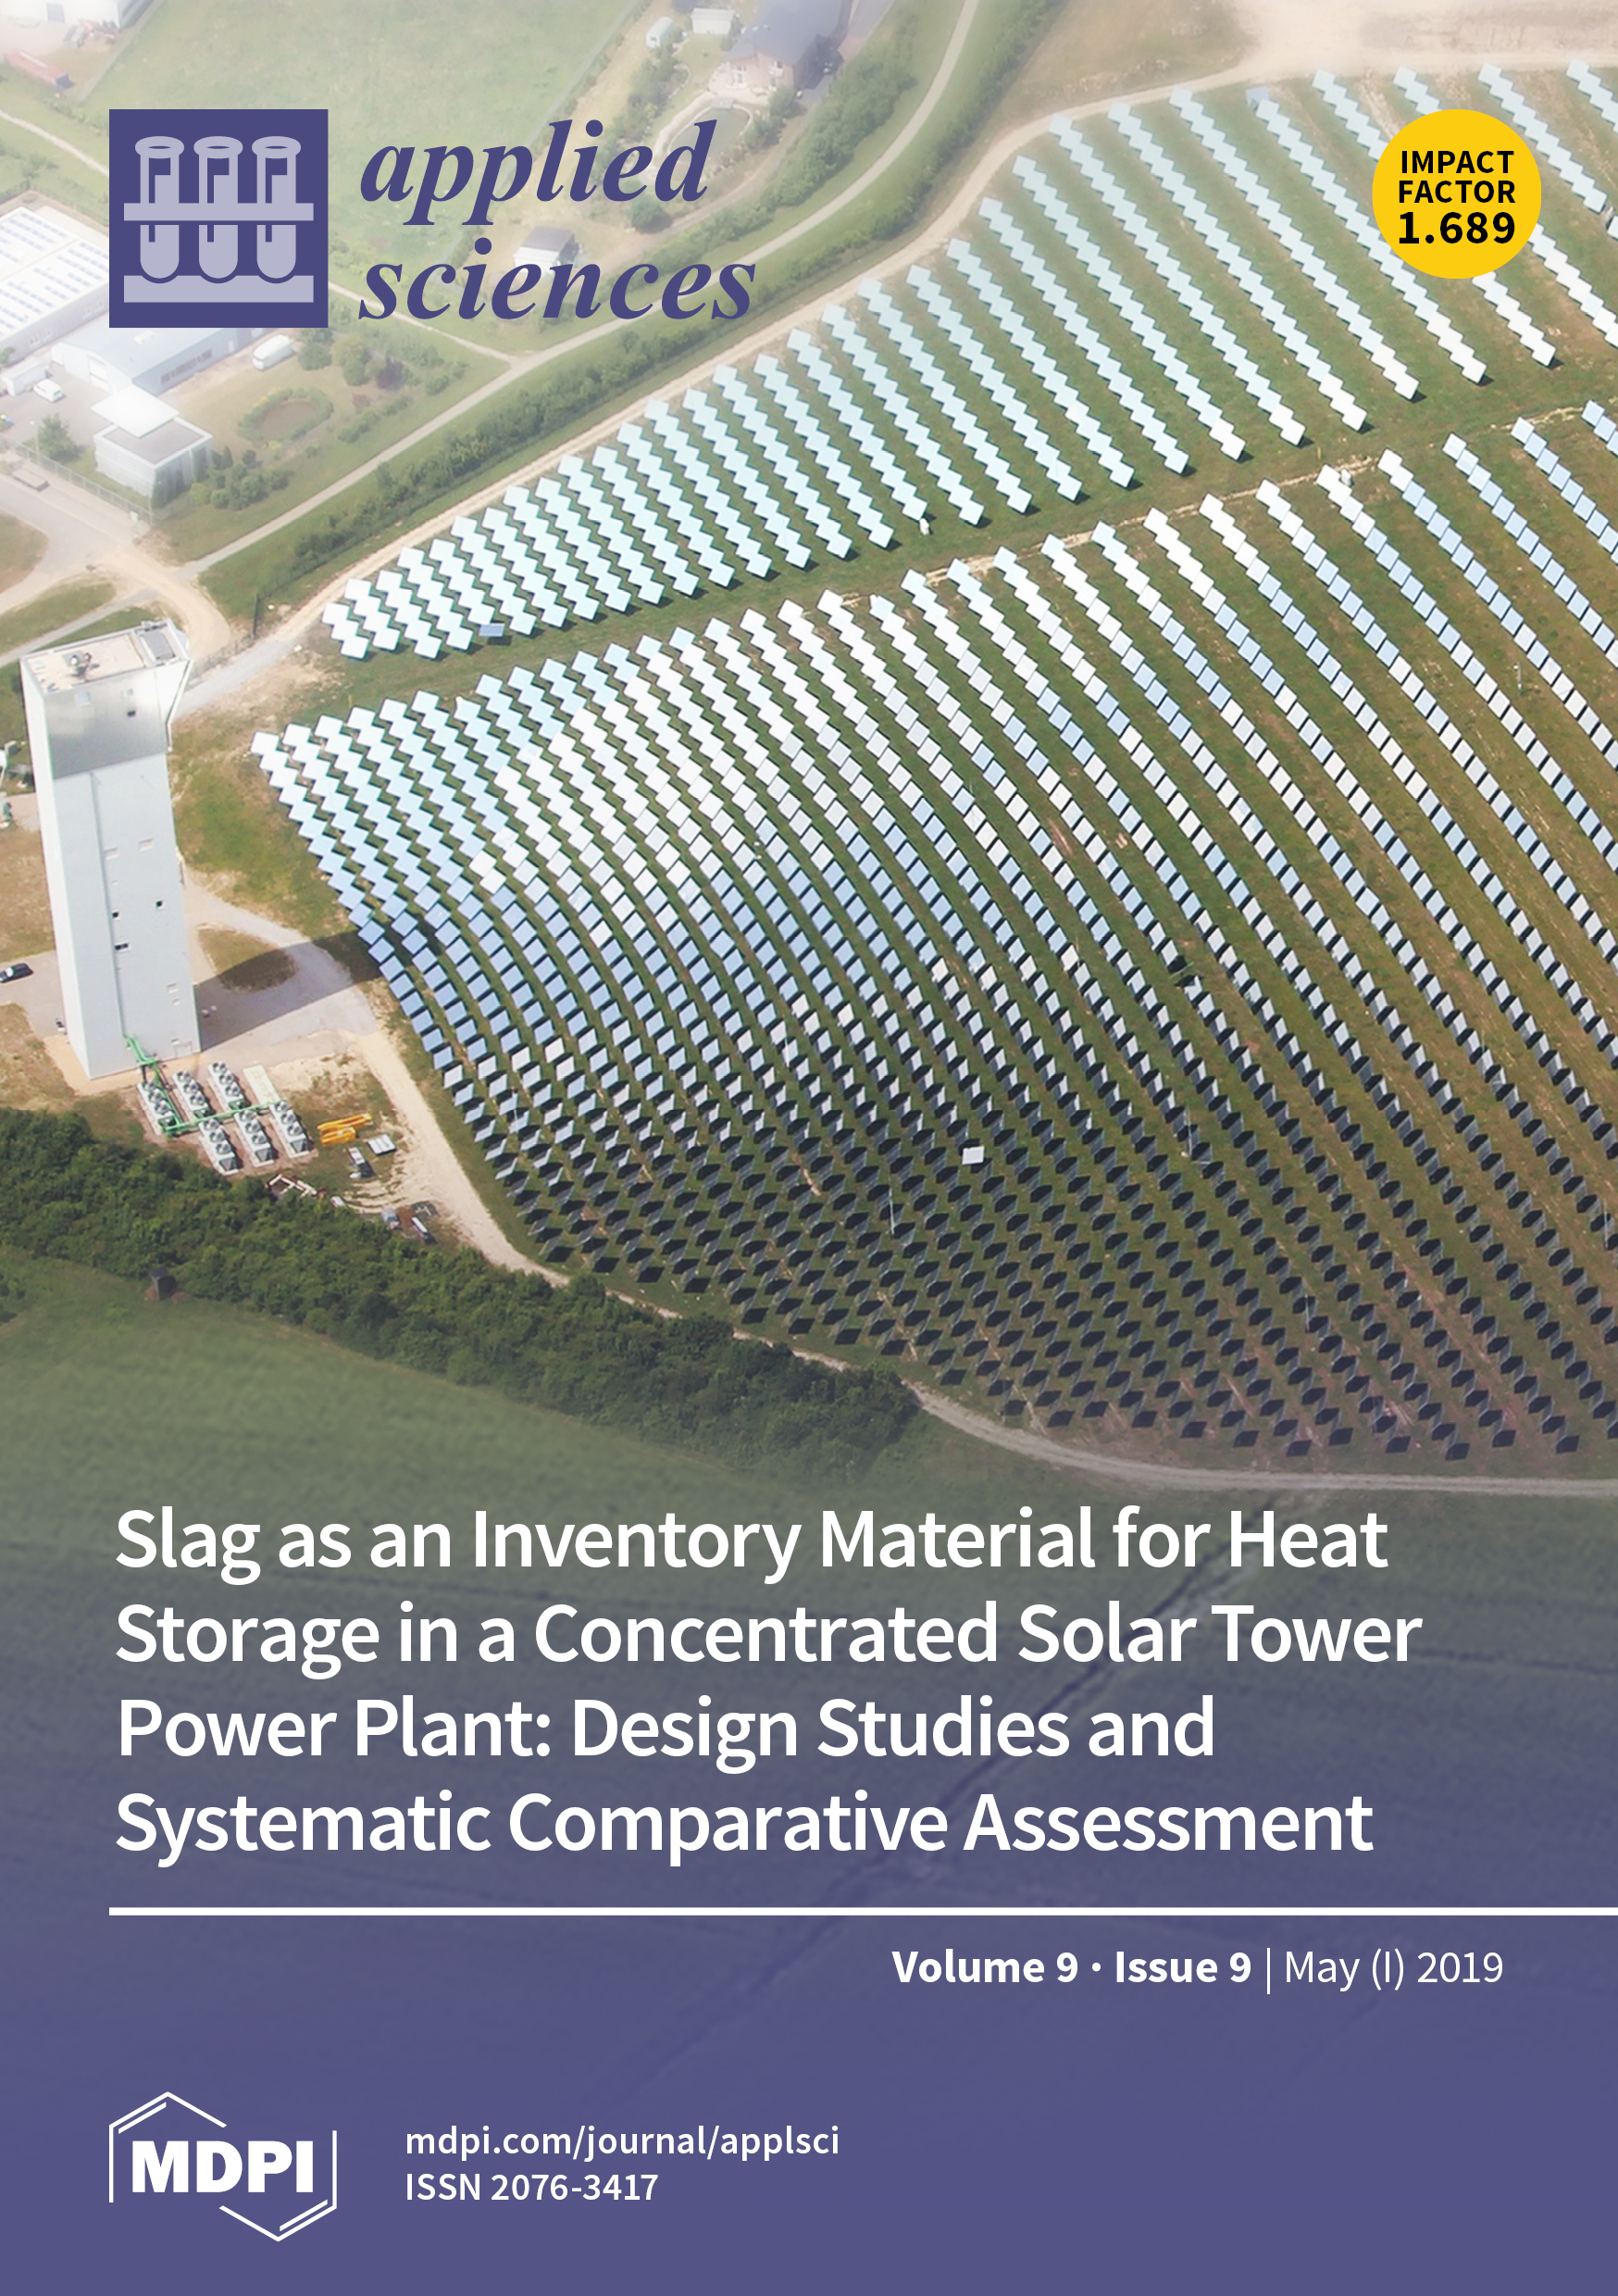 3fd4b961b Cover Story (view full-size image) By using metallurgical slag from an  electric arc furnace as an inventory material in thermal energy  ...  Read  more.